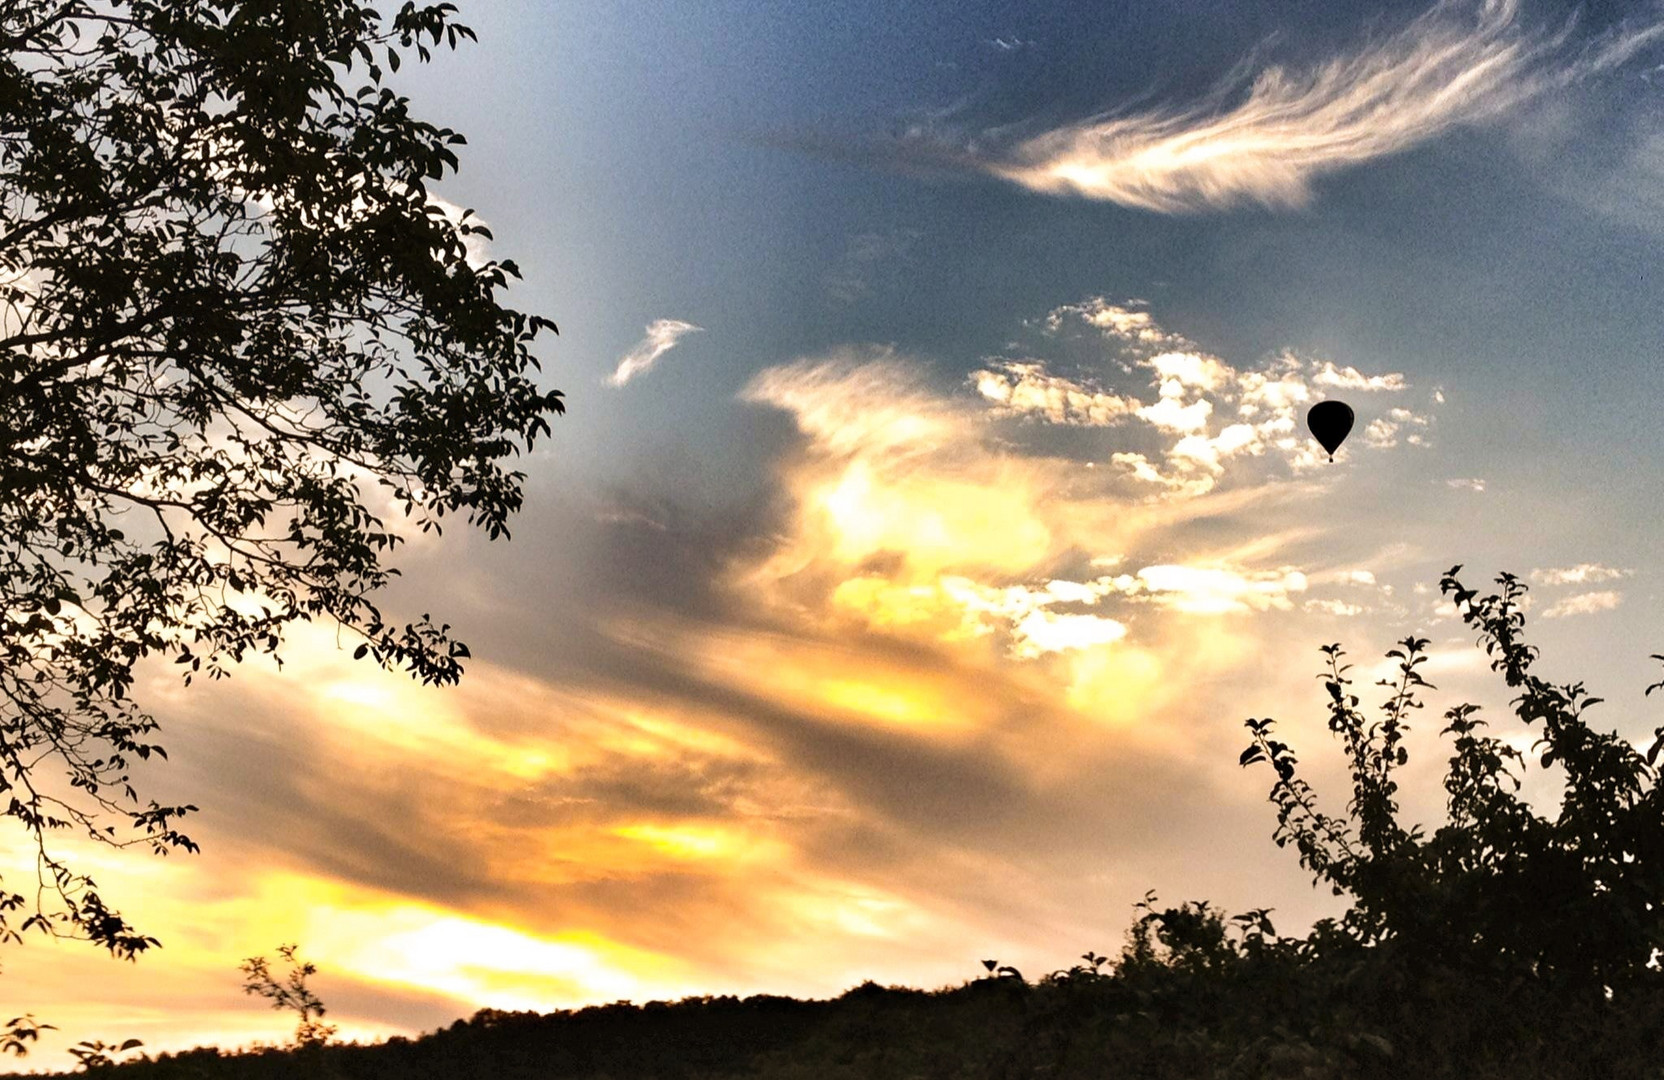 Ballon am Abendhimmel